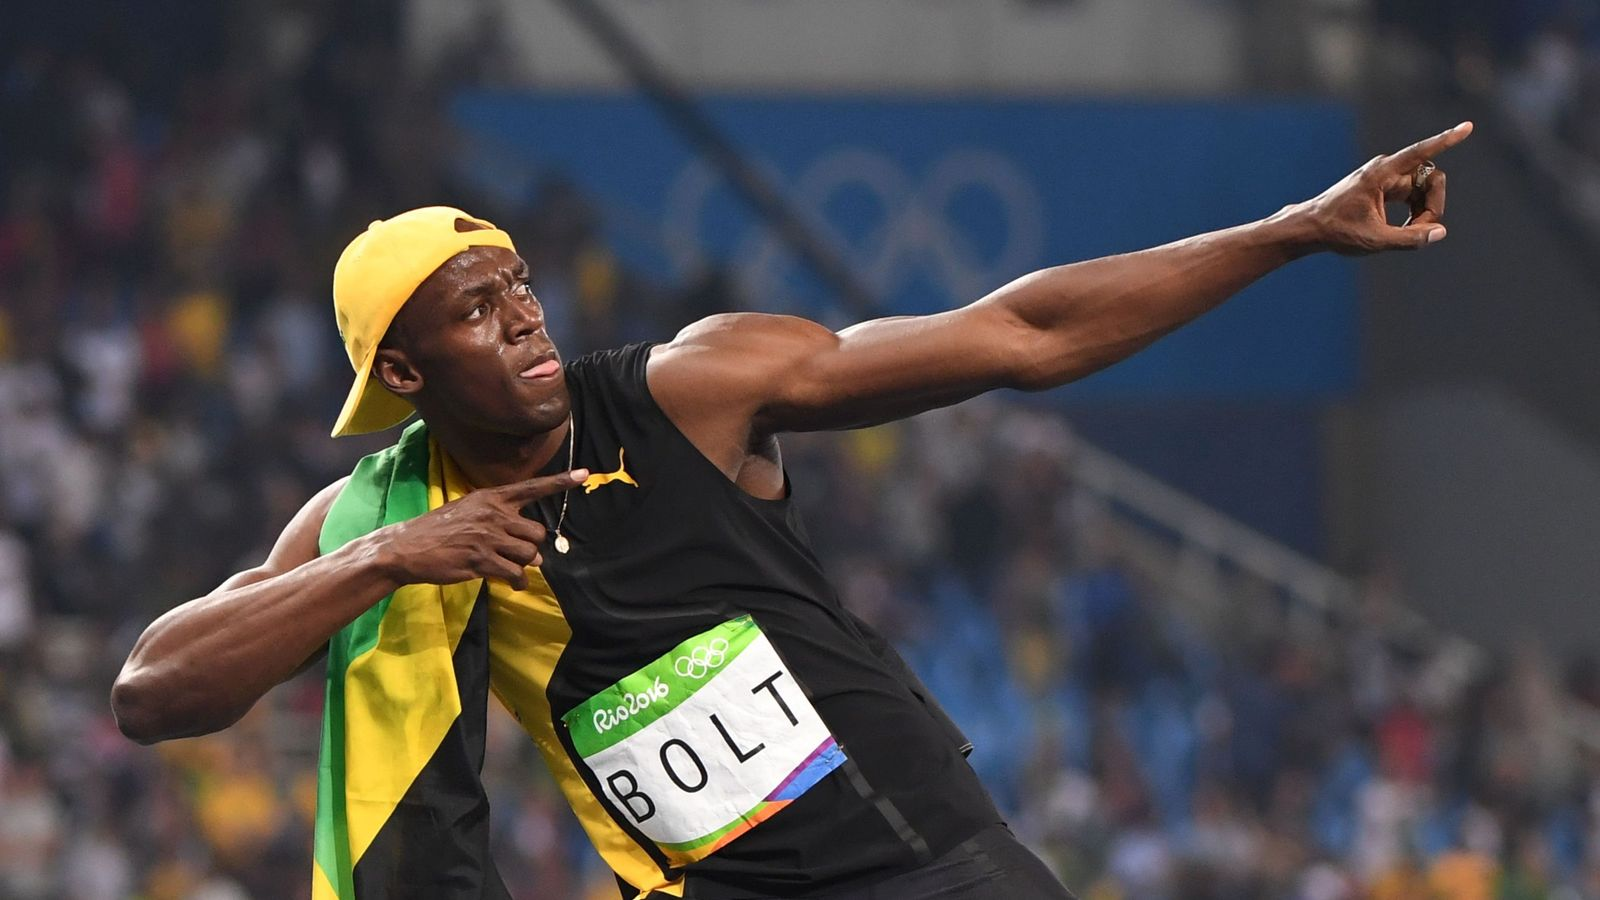 Usain Bolt wins Olympic gold in men's 100m final ...